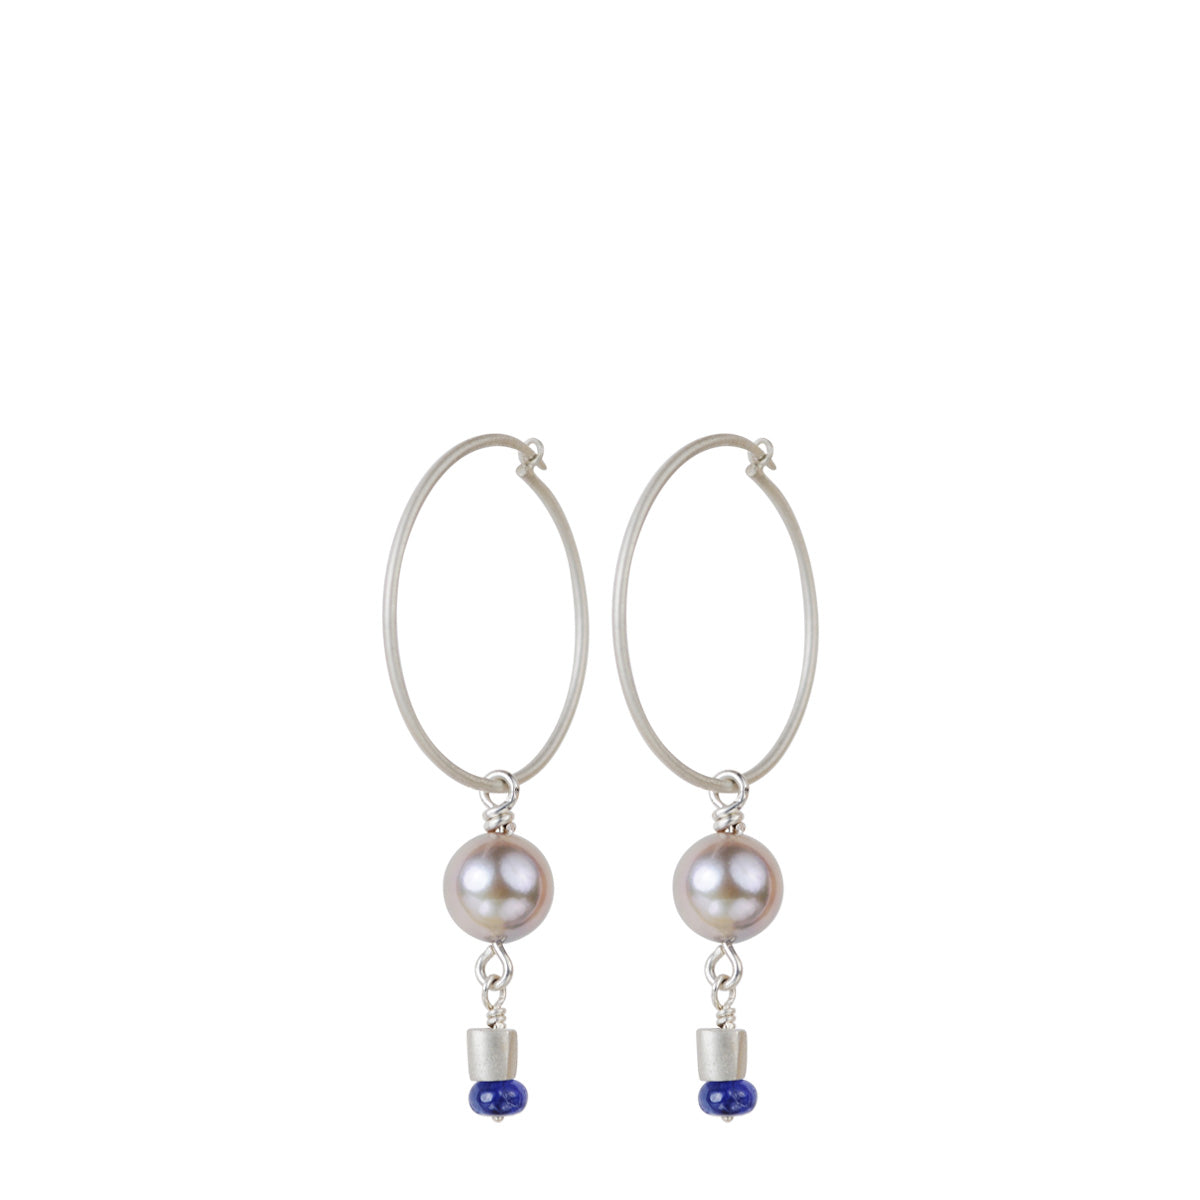 Sterling Silver Simple Hoop Earrings with Akoya Pearls and Blue Sapphire Beads